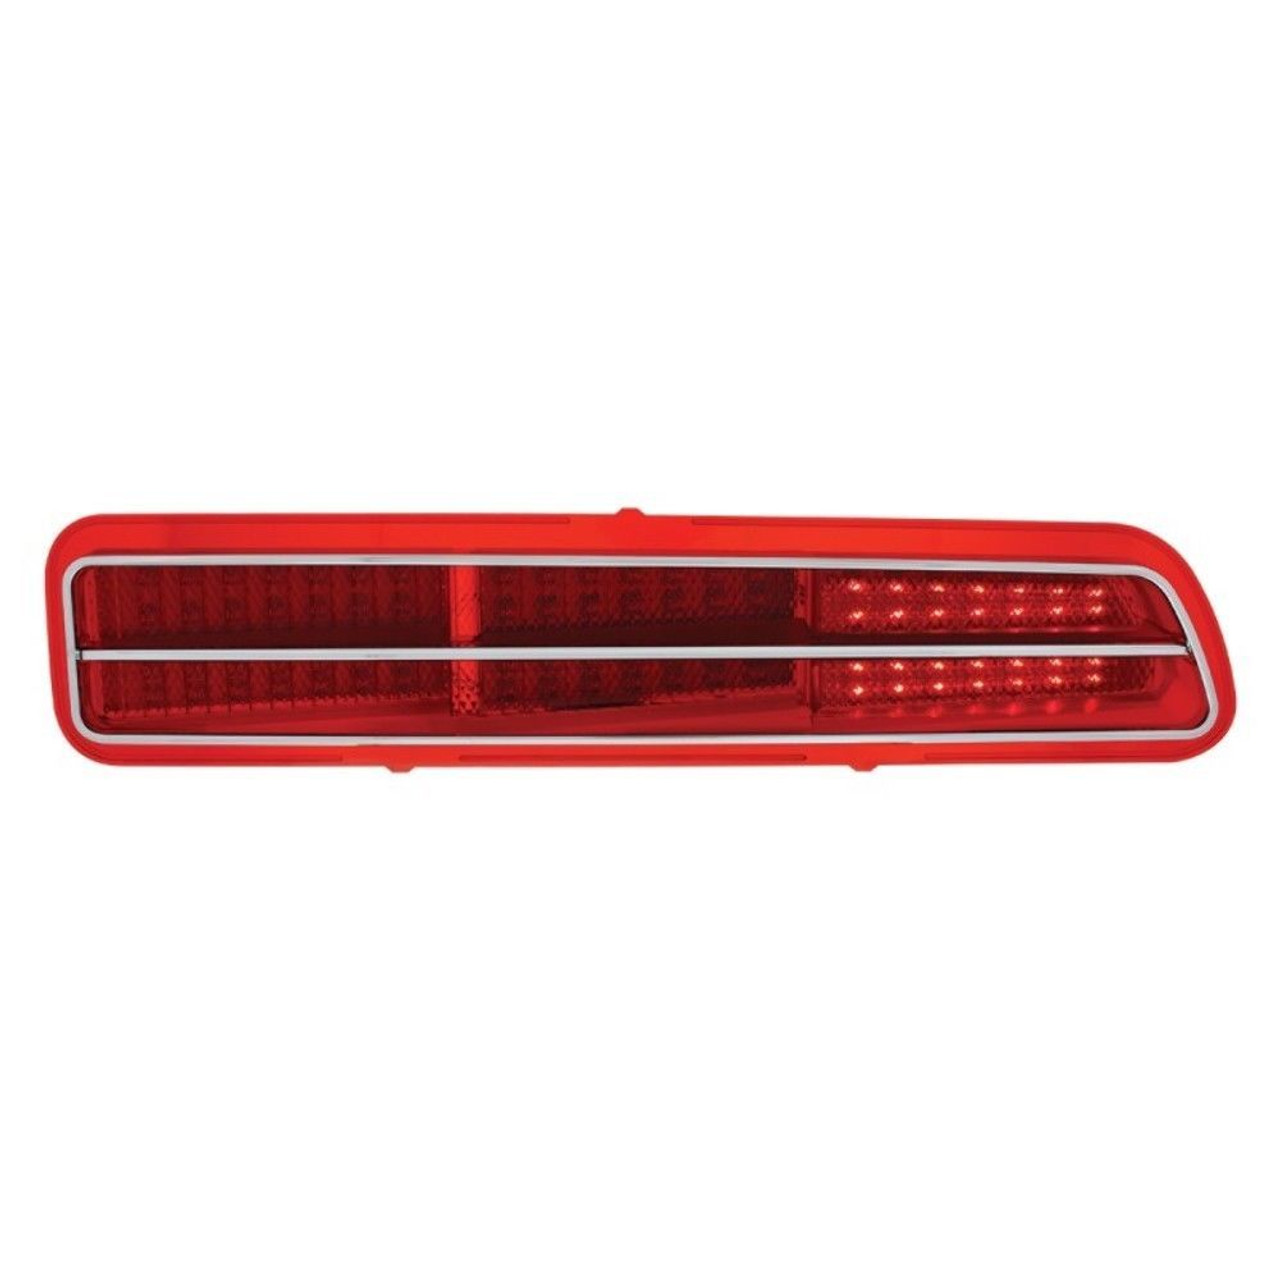 1969 Chevy Camaro LED Sequential Tail Light, Right Hand / Passenger Side